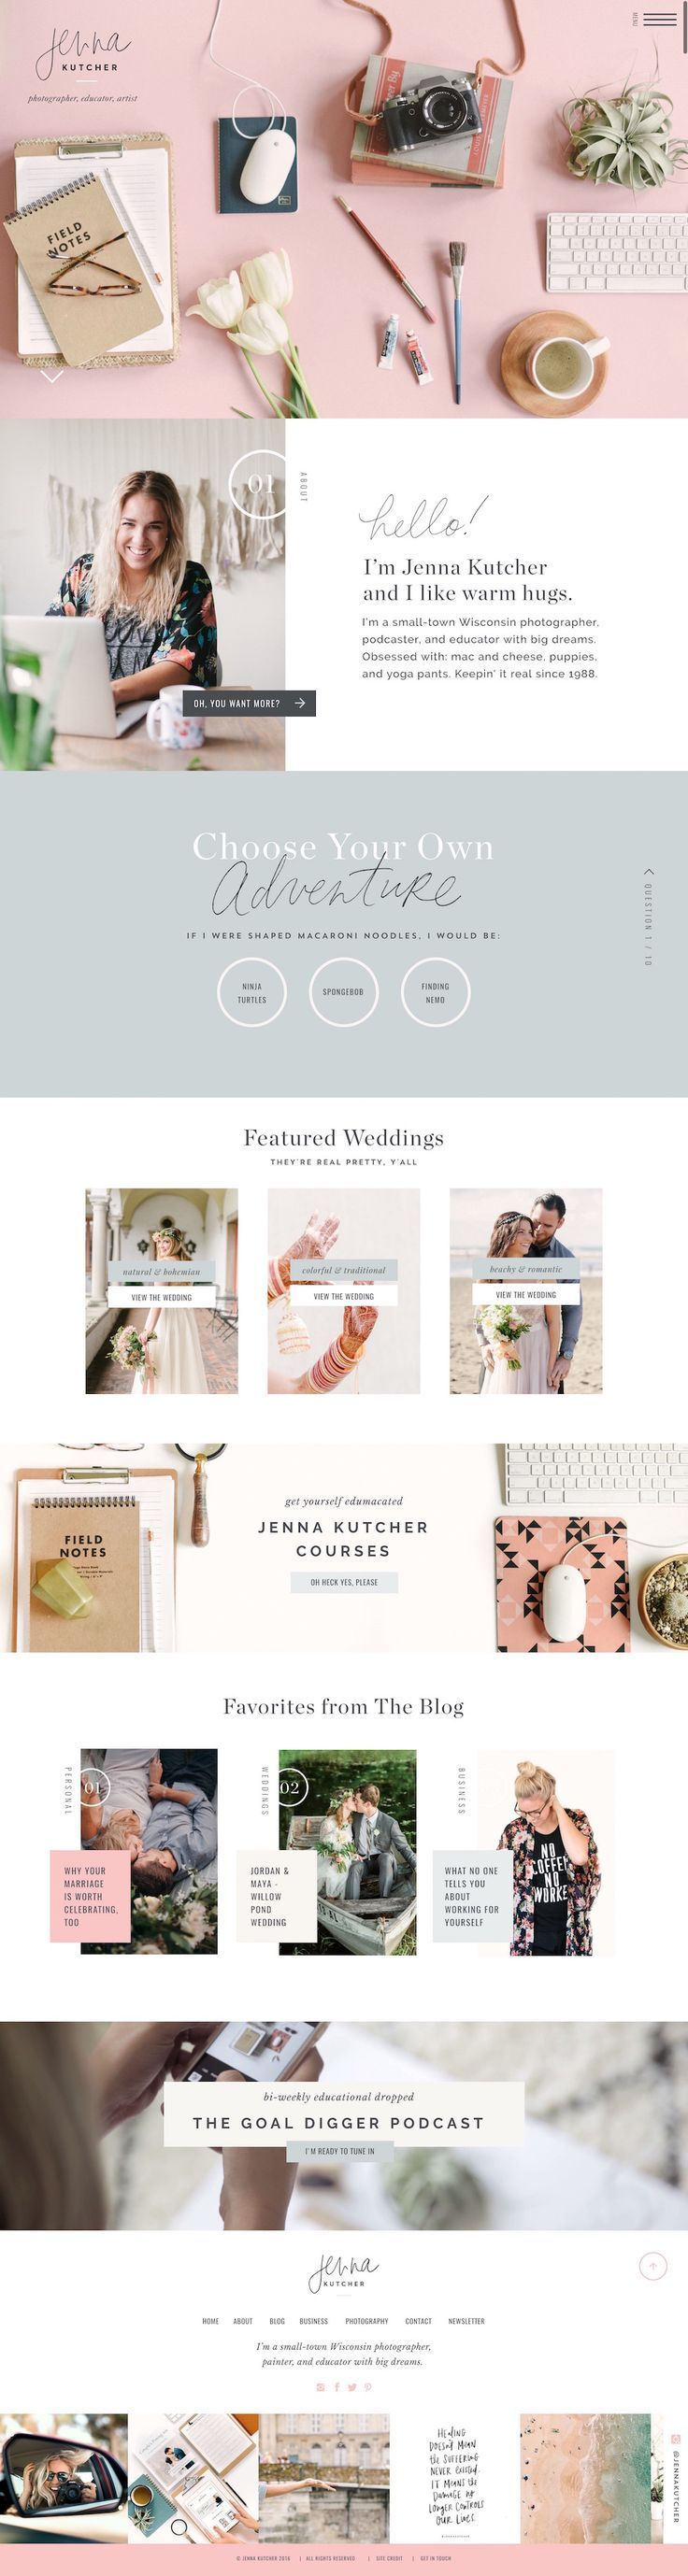 I Tested Out Showit Here S My Review With The Pros Cons Paige Brunton Squarespace Templates Squarespace Designer Courses Top Website Designs Web Design Tips Web Layout Design